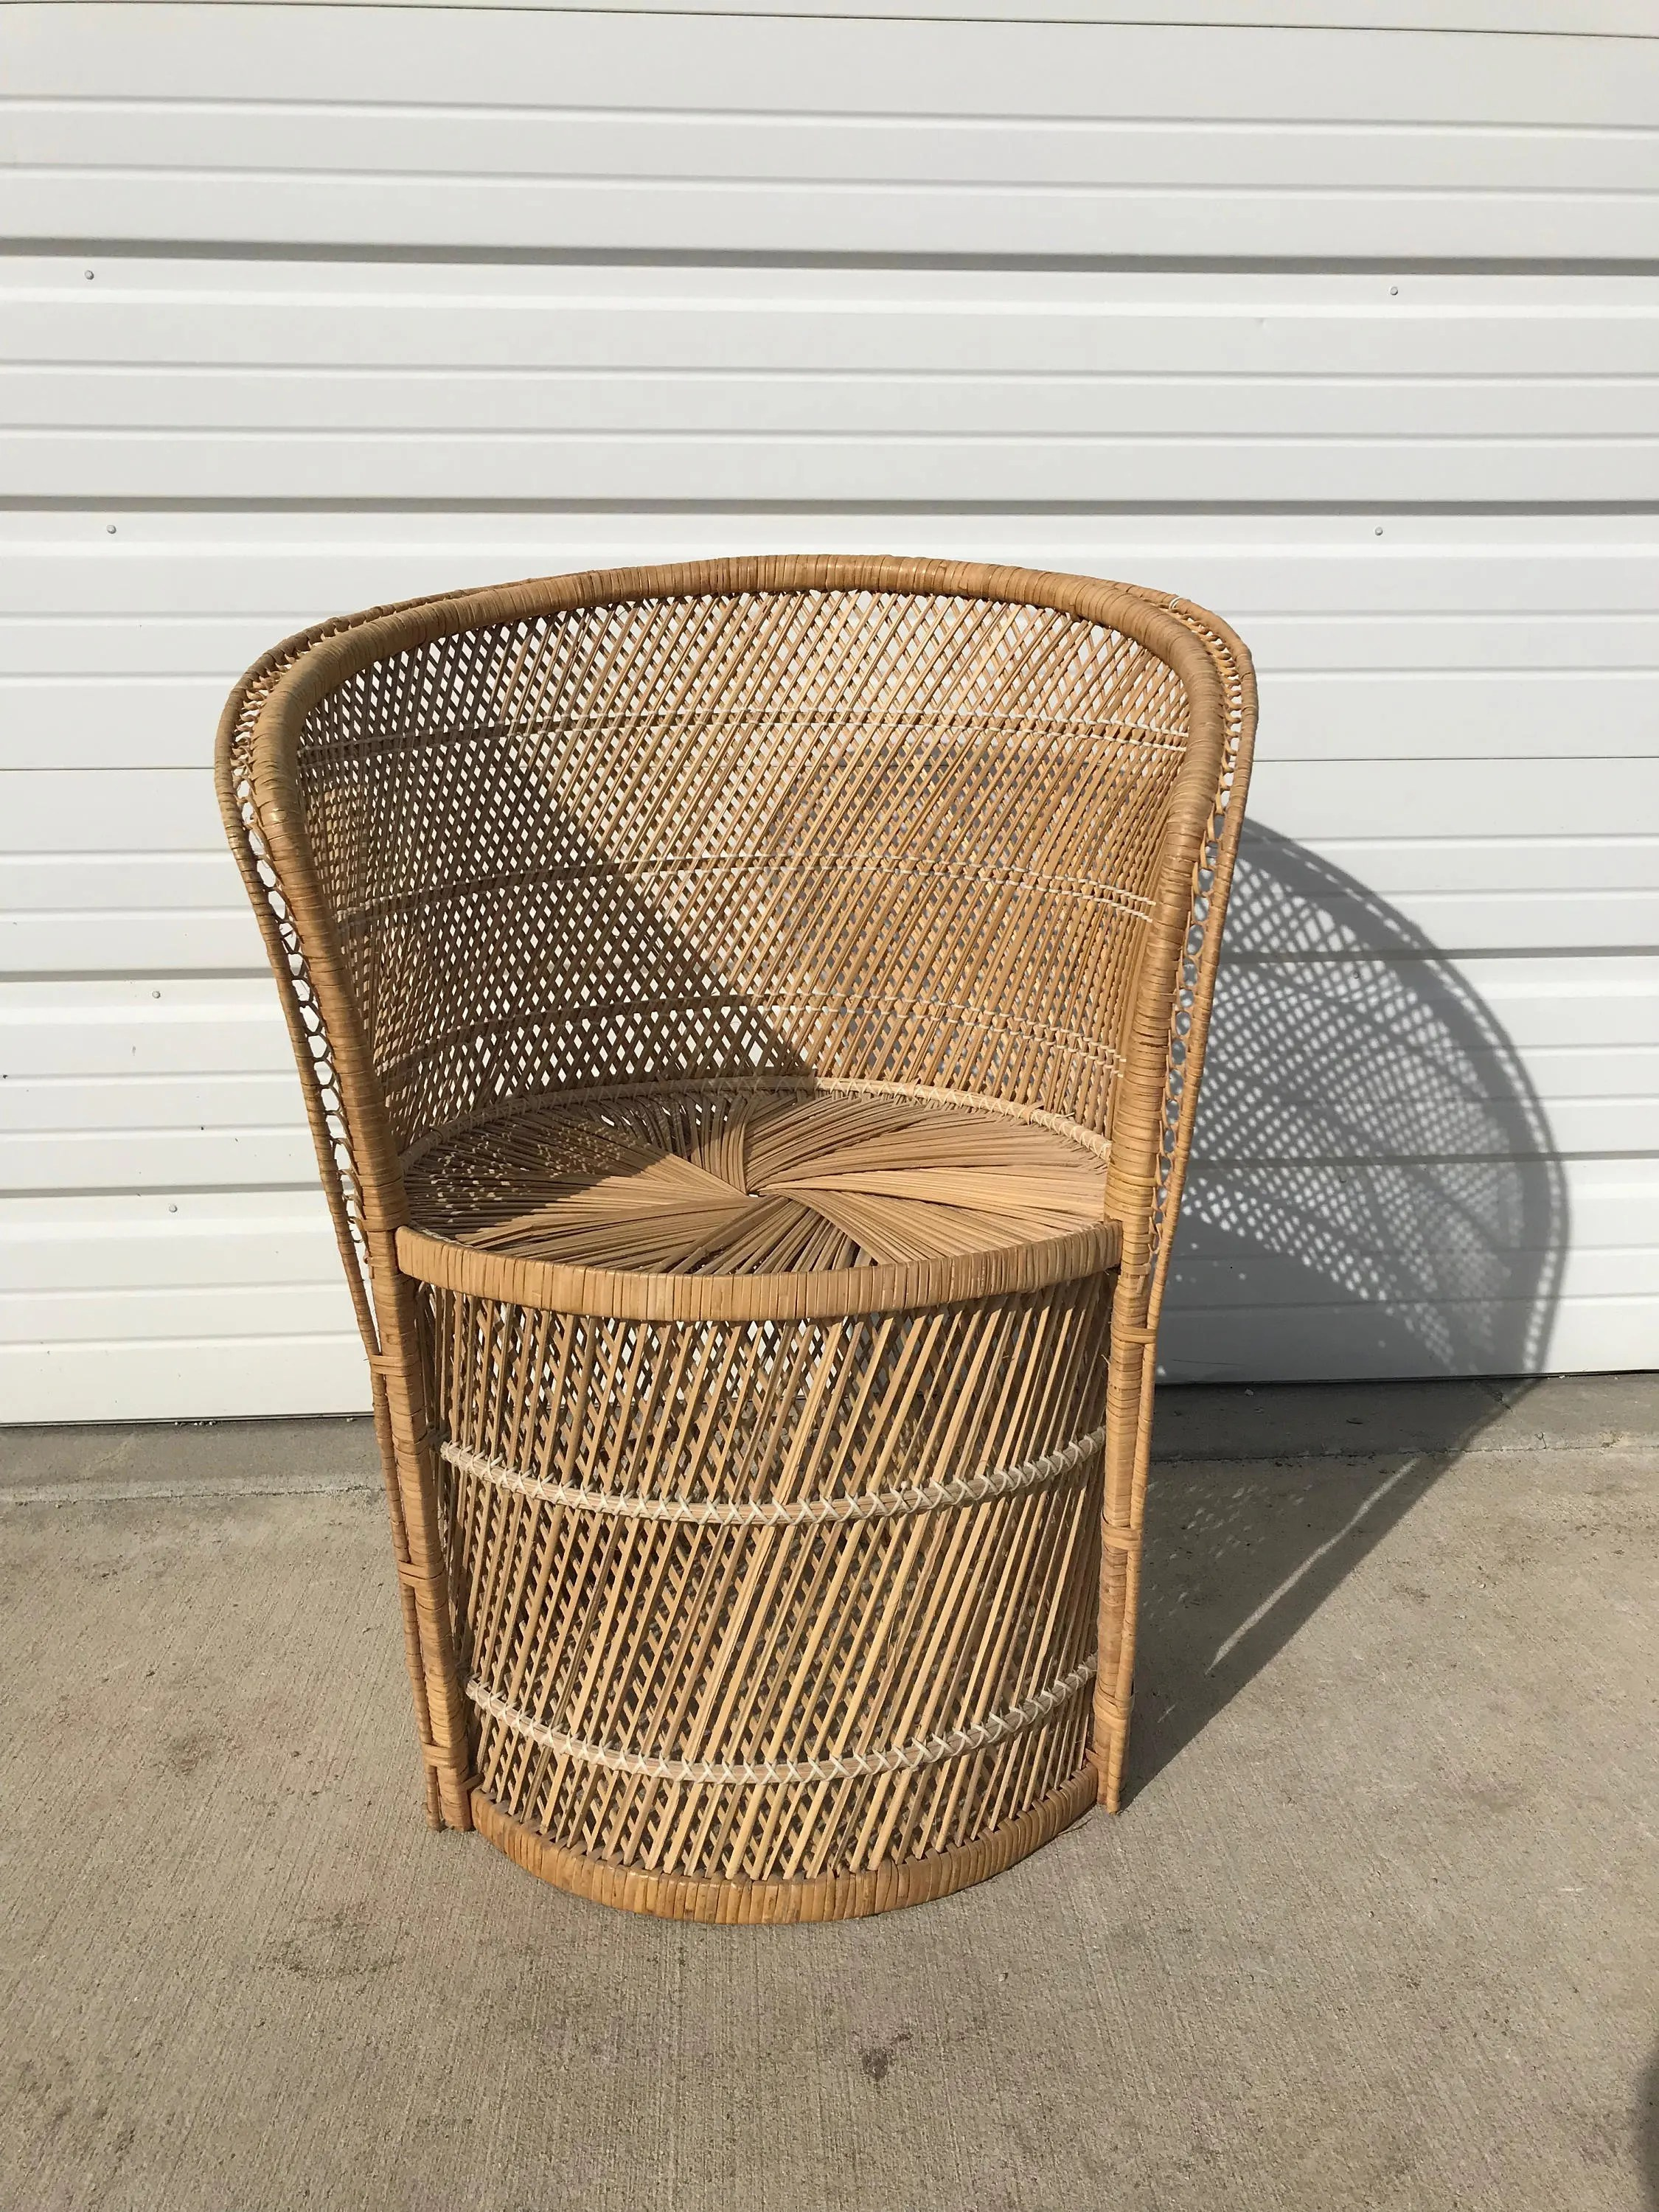 Vintage Rattan Chair Vintage Rattan Chair Boho Chic Peacock Chair Fan Regency